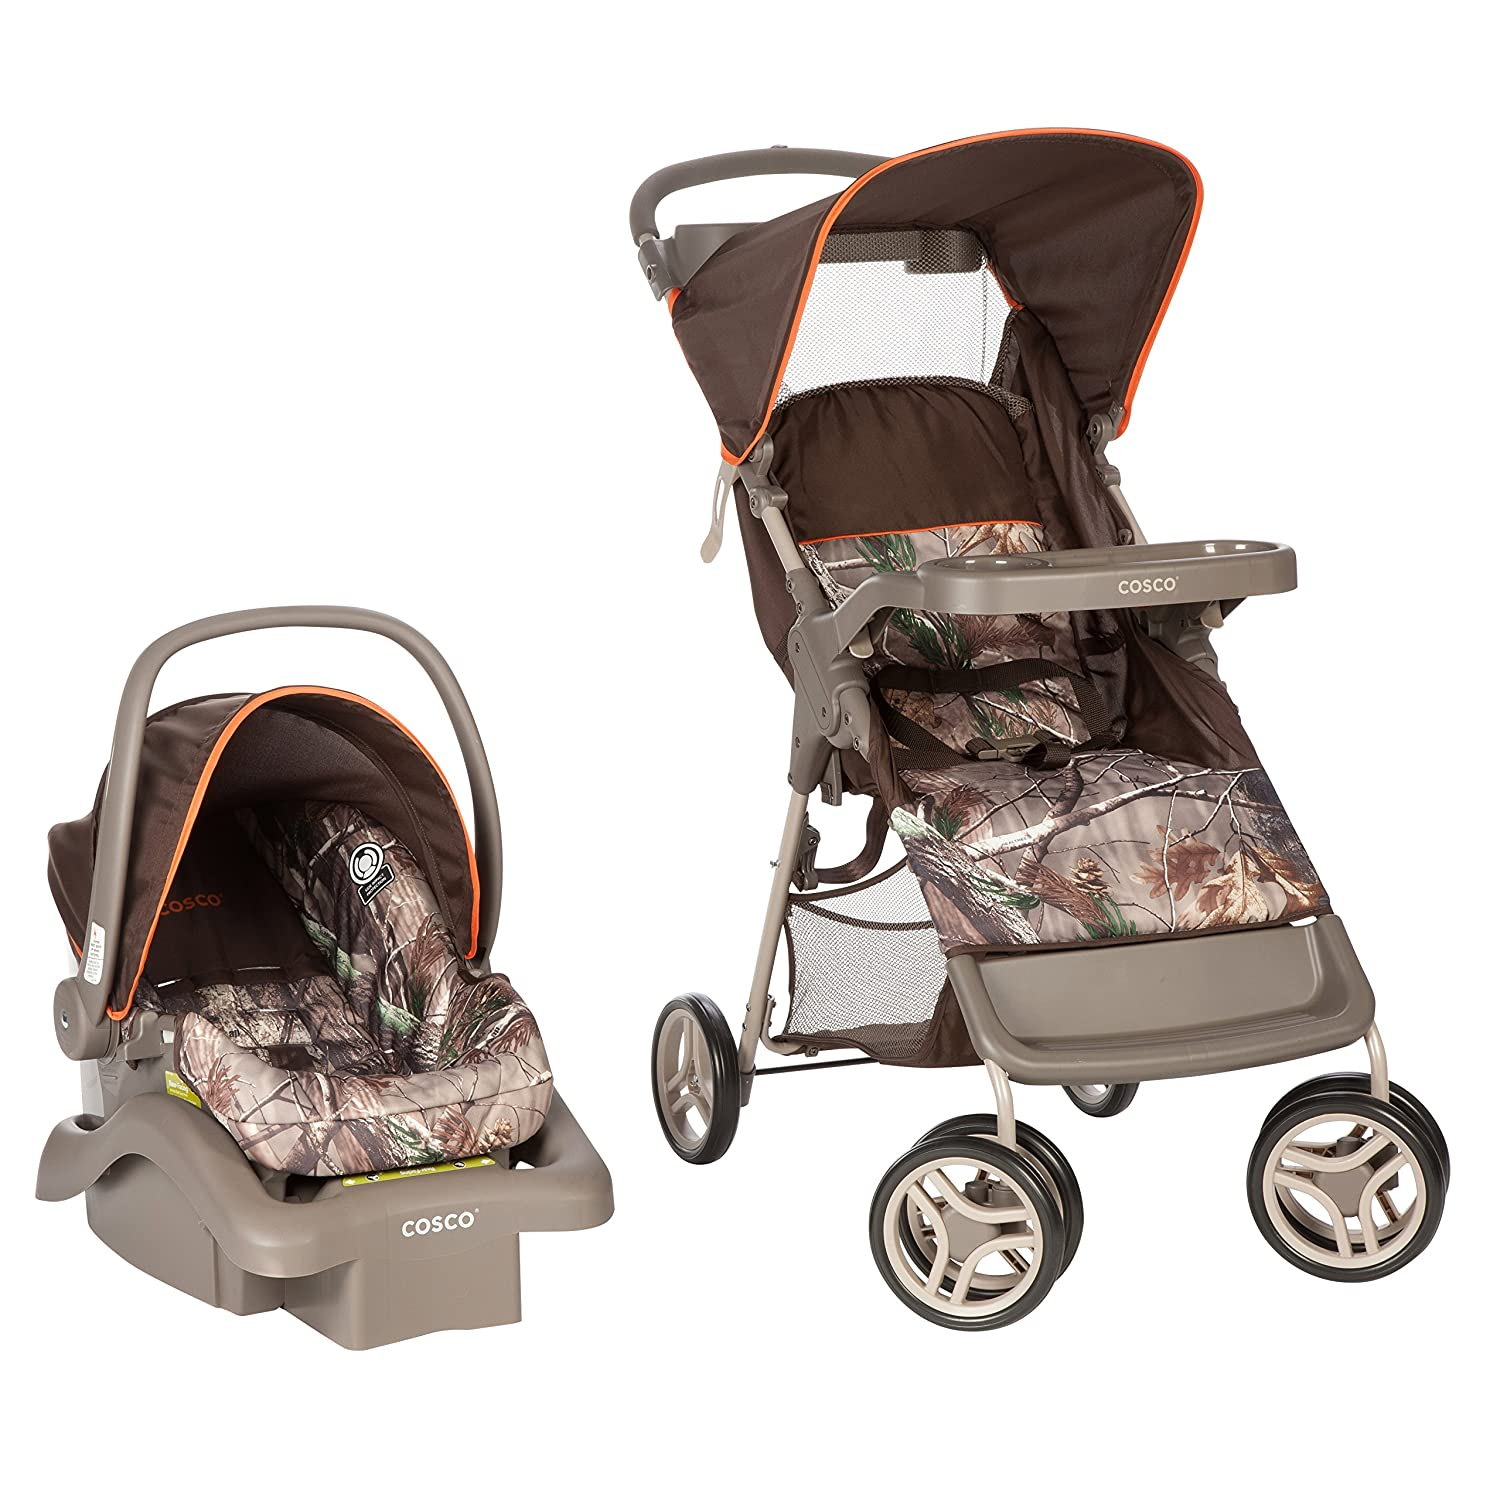 cosco lift and stroll travel system instructions